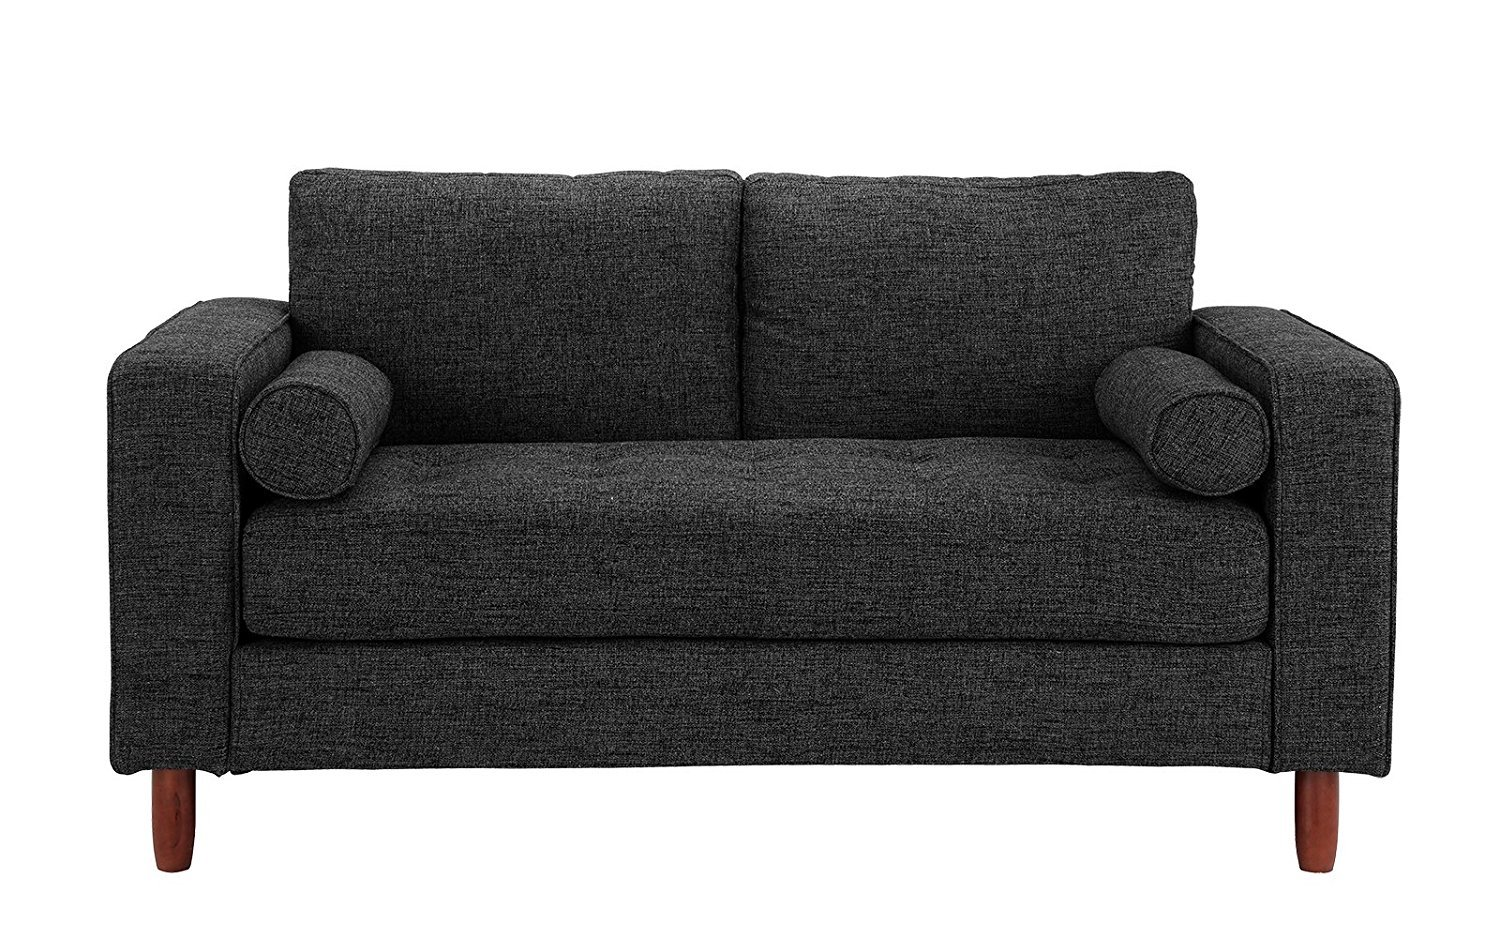 Details About Modern Sofa Loveseat With Tufted Linen Fabric   Living Room  Couch, Dark Grey